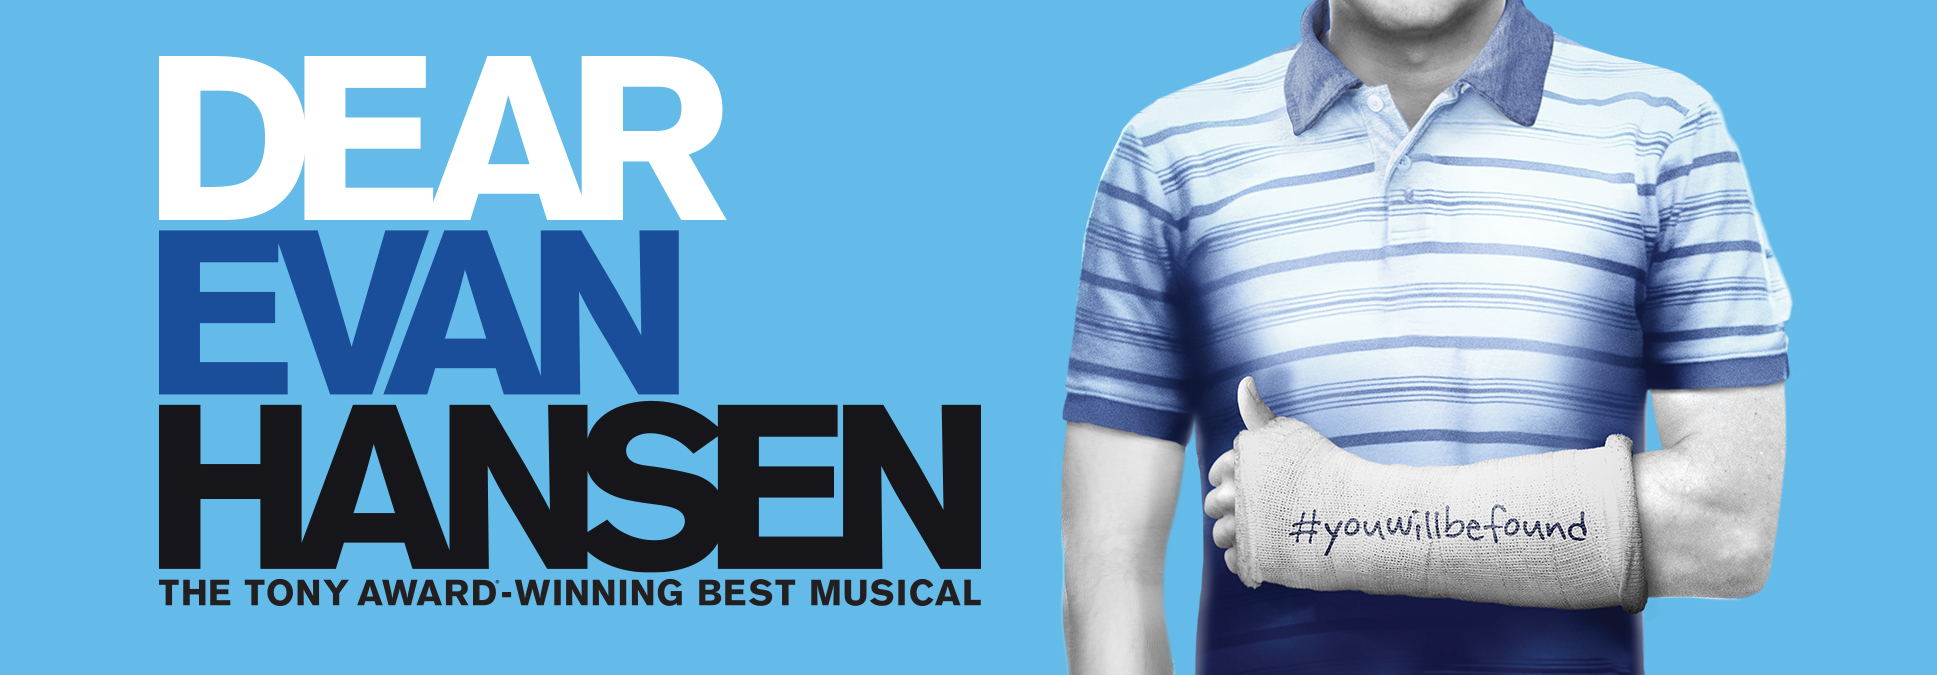 Dear Evan Hansen in Milwaukee at the Marcus Center